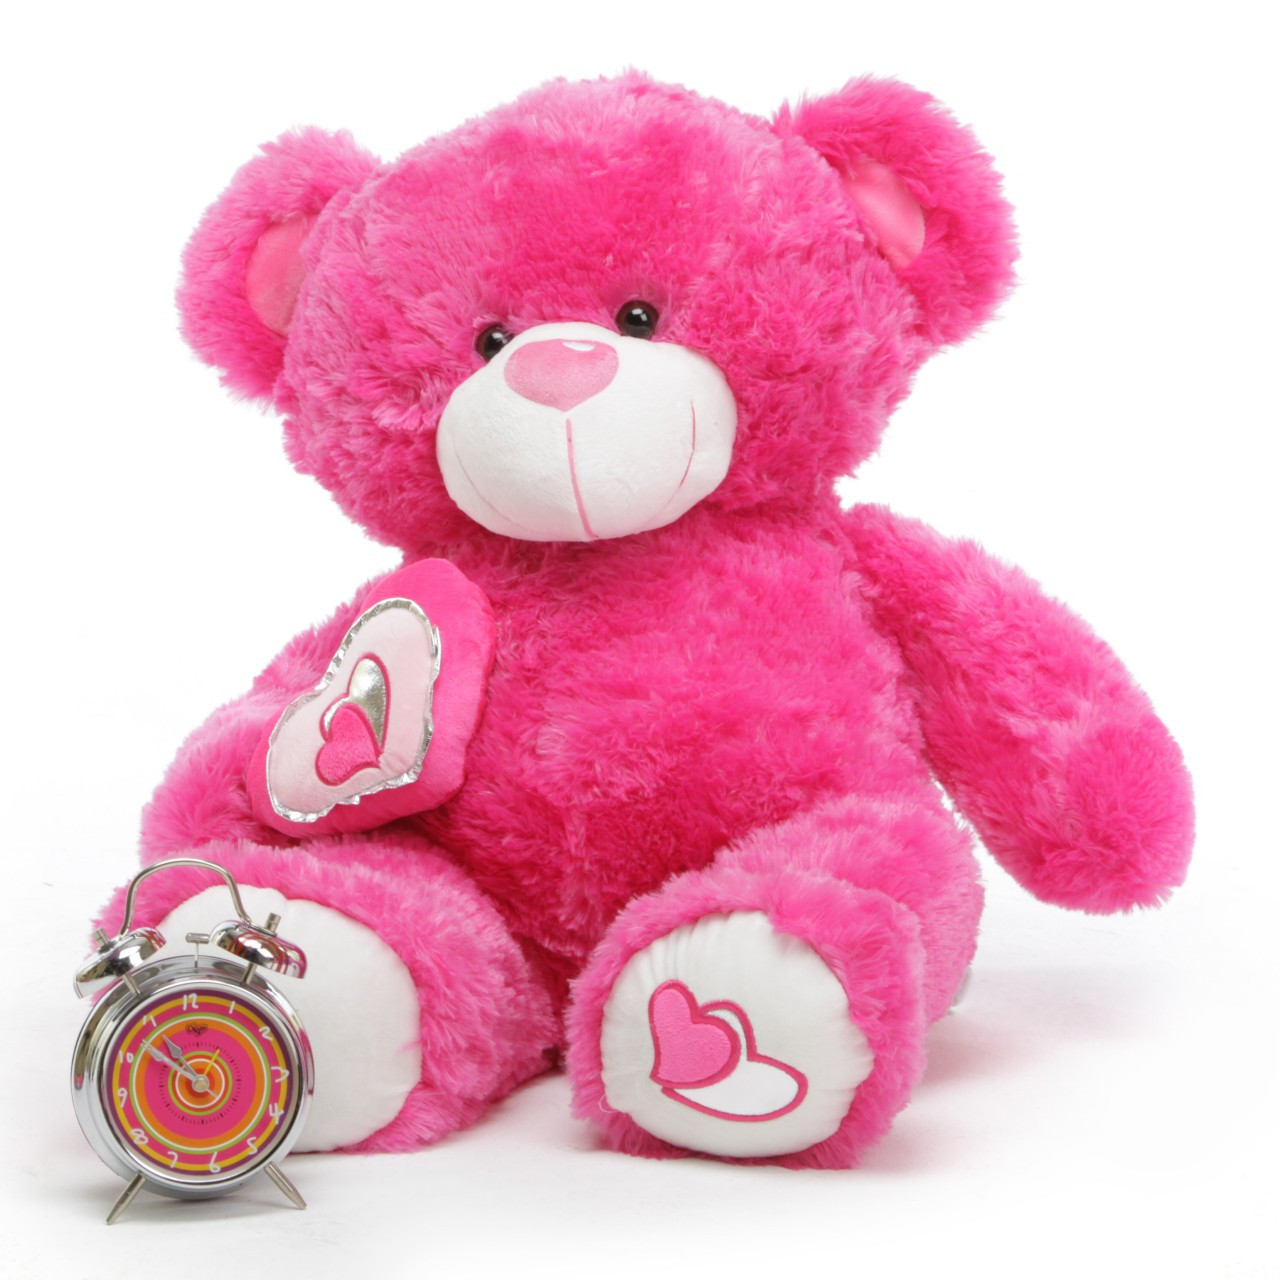 ChaCha Big Love Irresistible Hot Pink Teddy Bear 30 in